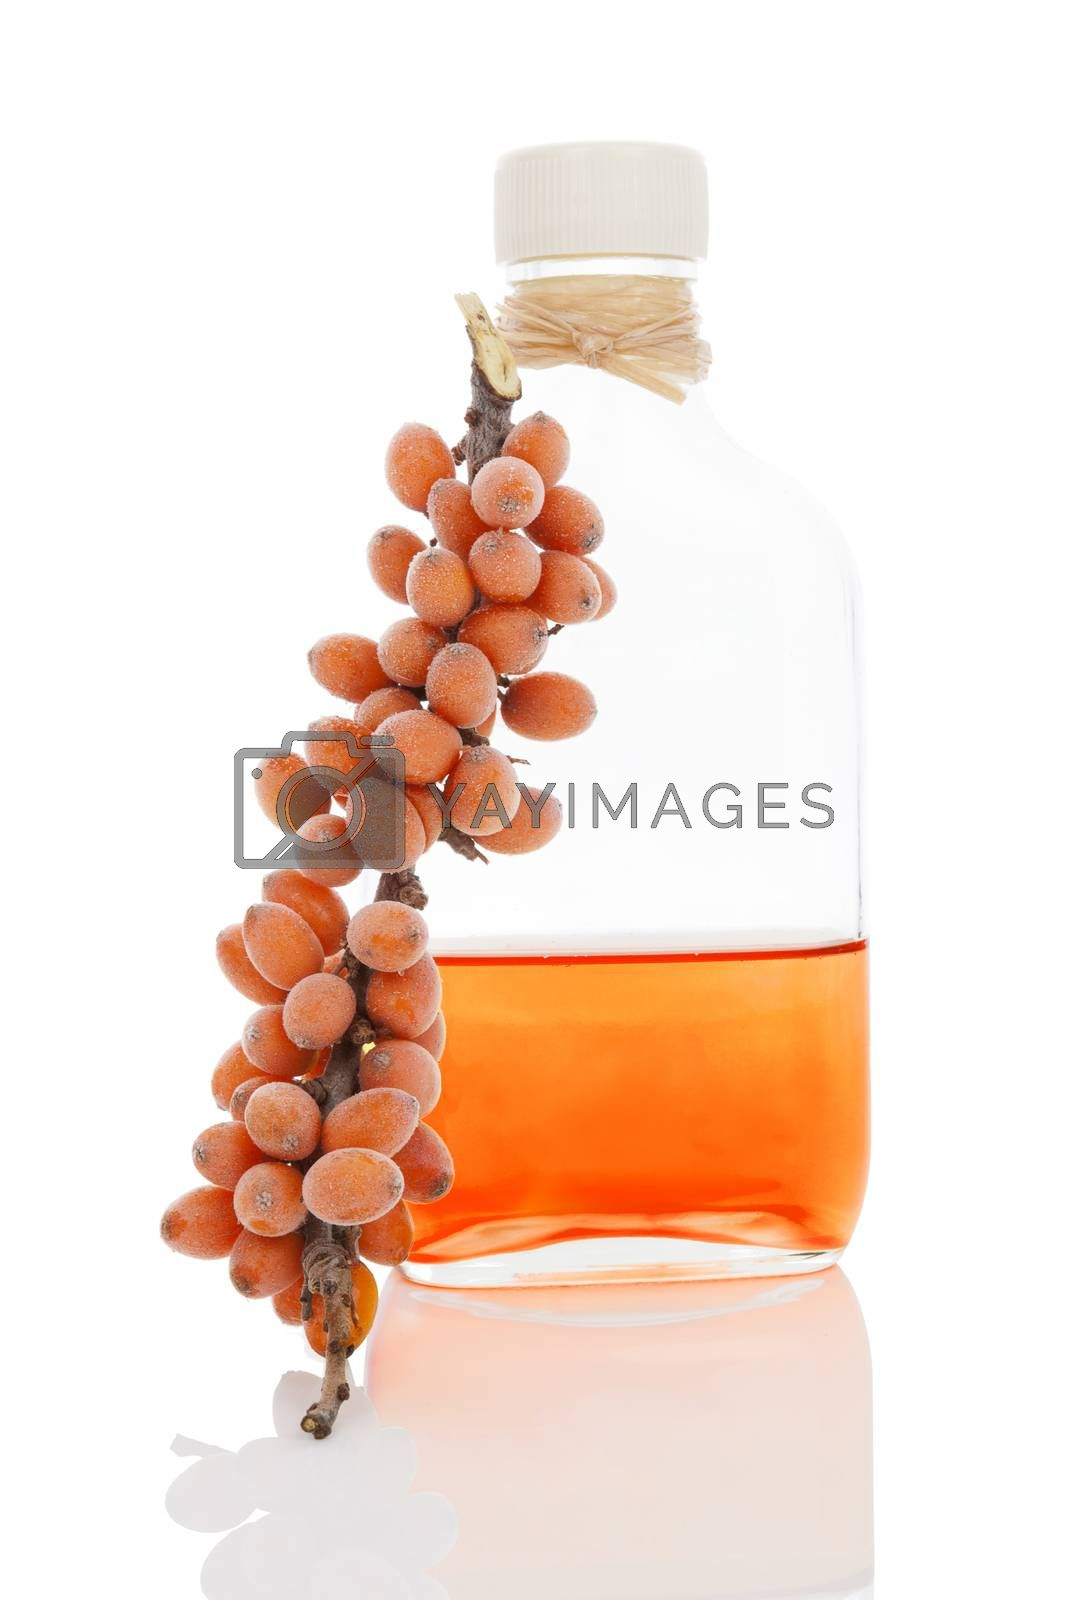 Sea buckthorn oil in glass bottle and fresh berries with frost isolated on white background. Healthy alternative medicine.